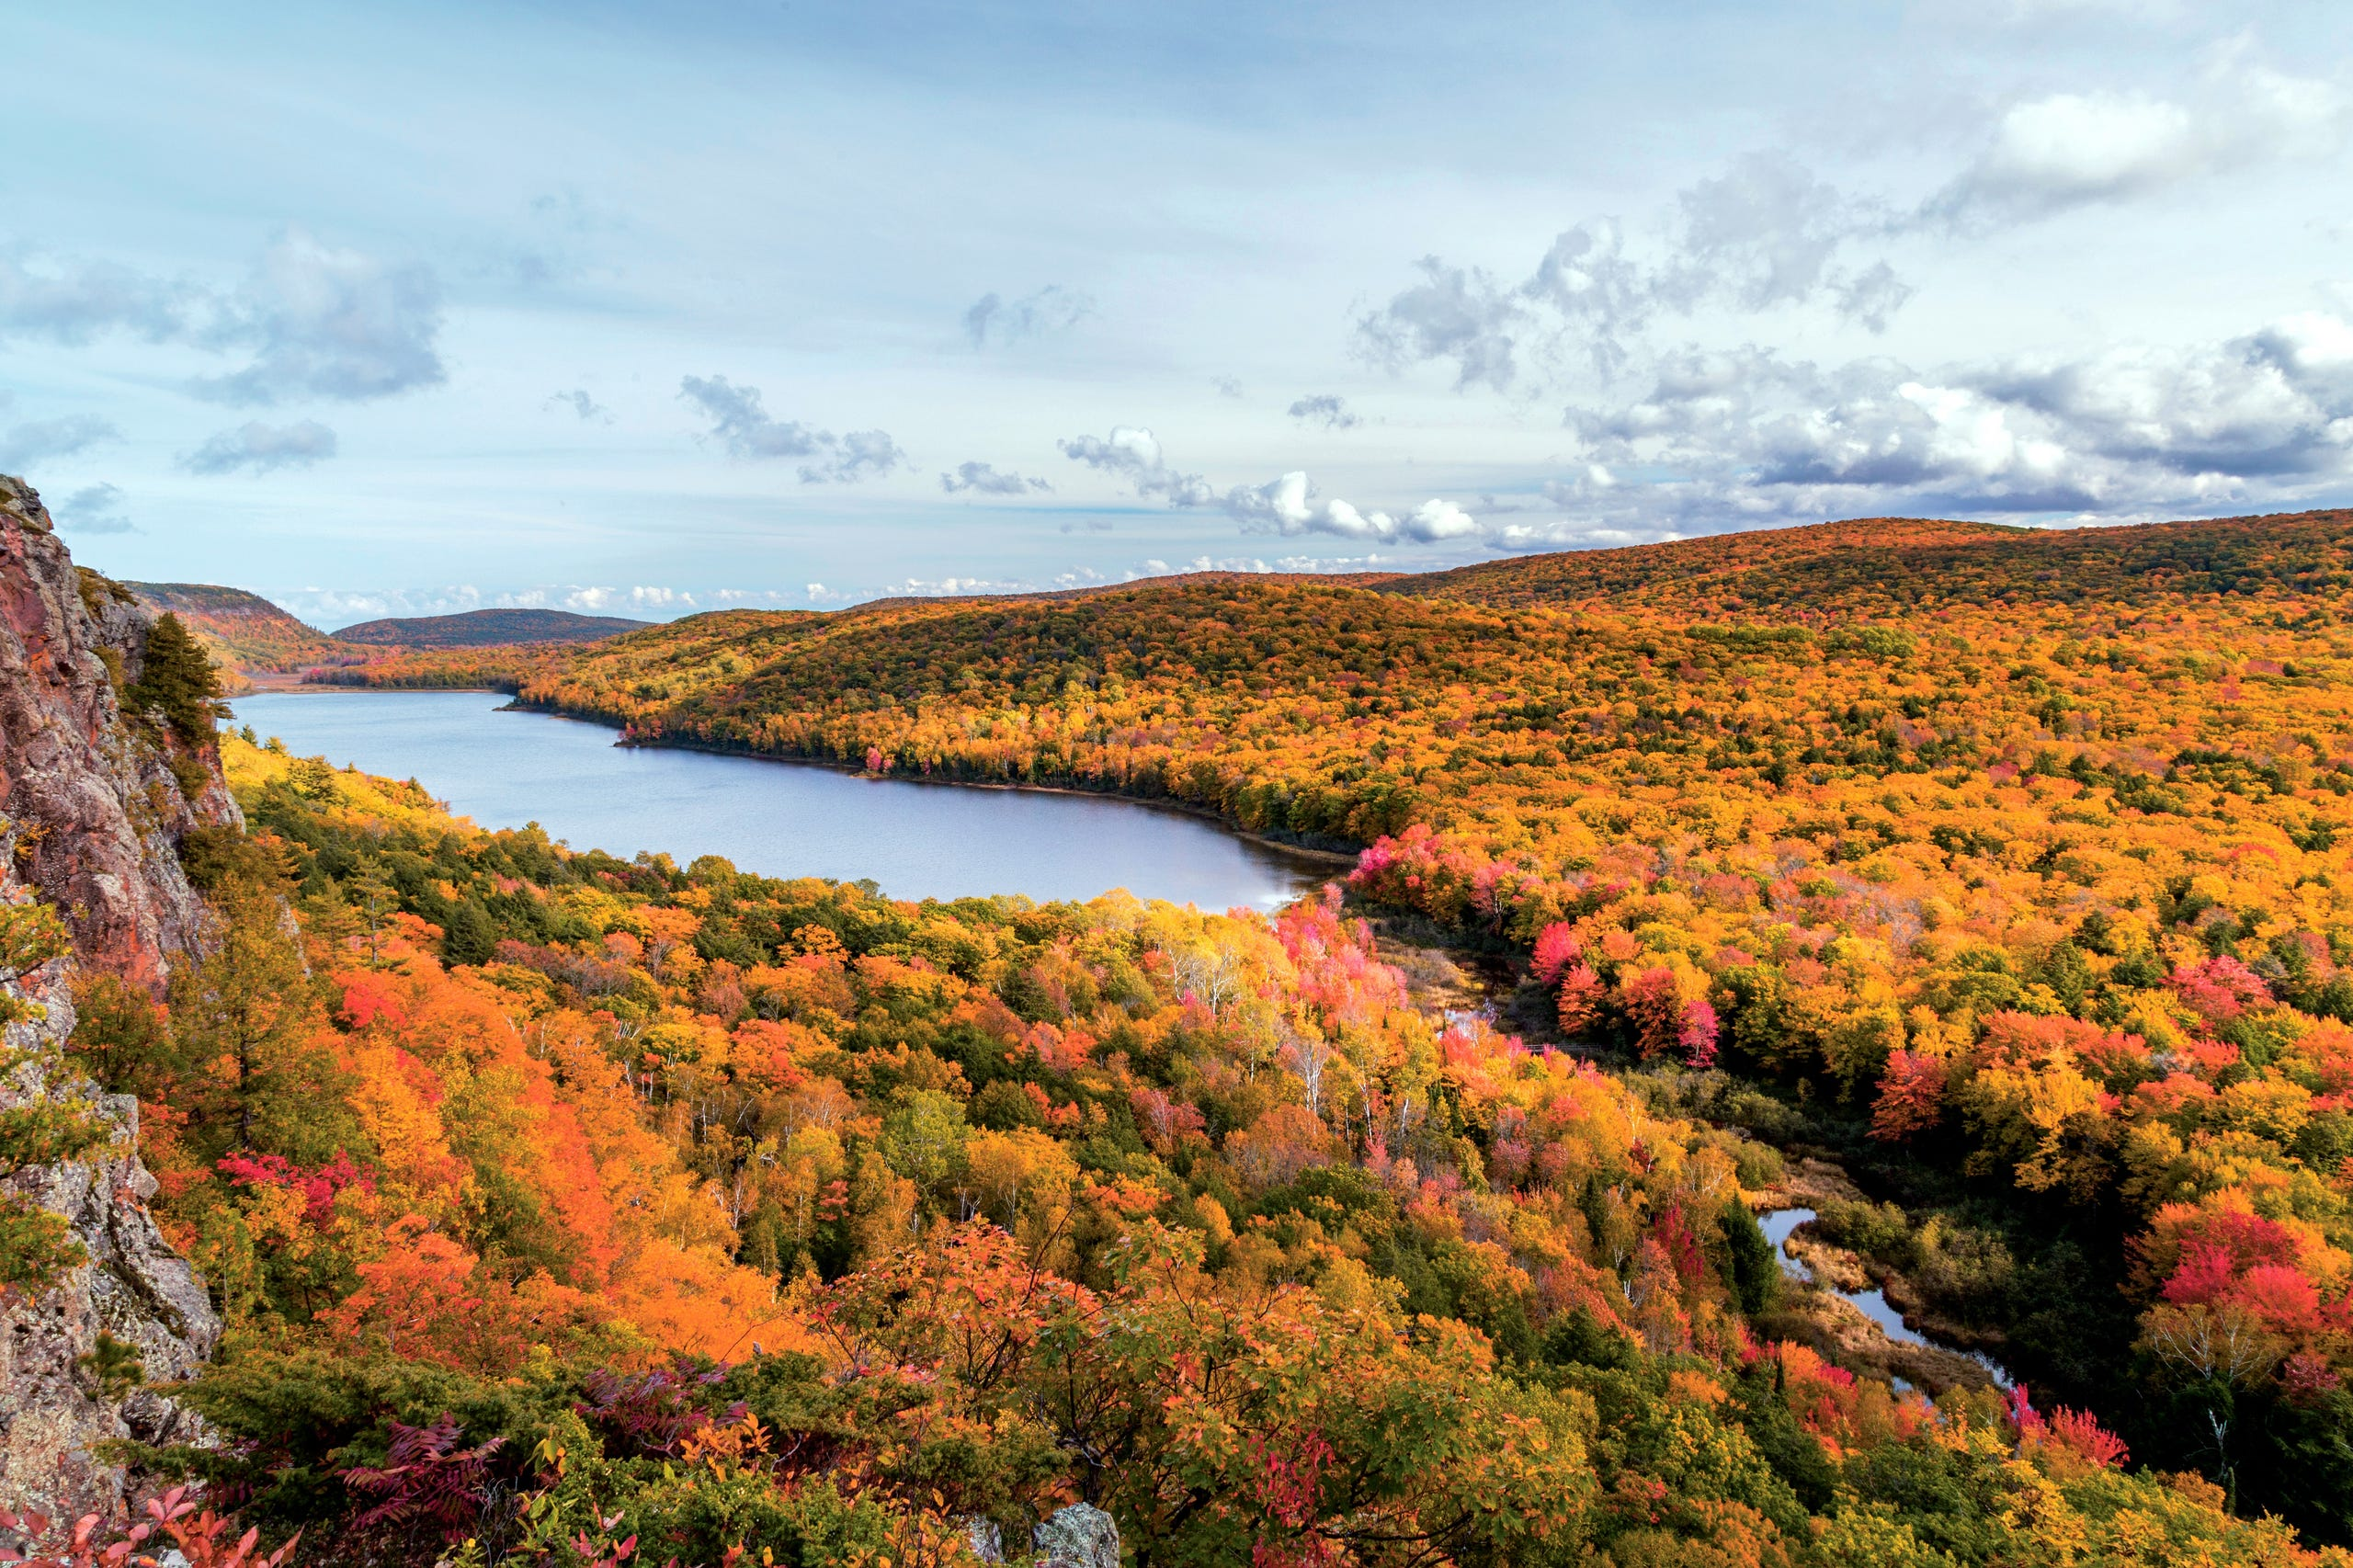 <strong>No. 2:&nbsp;Upper Peninsula, Michigan.&nbsp;</strong>Just about the entire Upper Peninsula puts on a display of fall color that peaks during the last two weeks of September and the first week of October. A favorite fall experience for leaf peepers is the drive along M-26 along the shores of Lake Roland and past the trees of Copper Country State Forest.